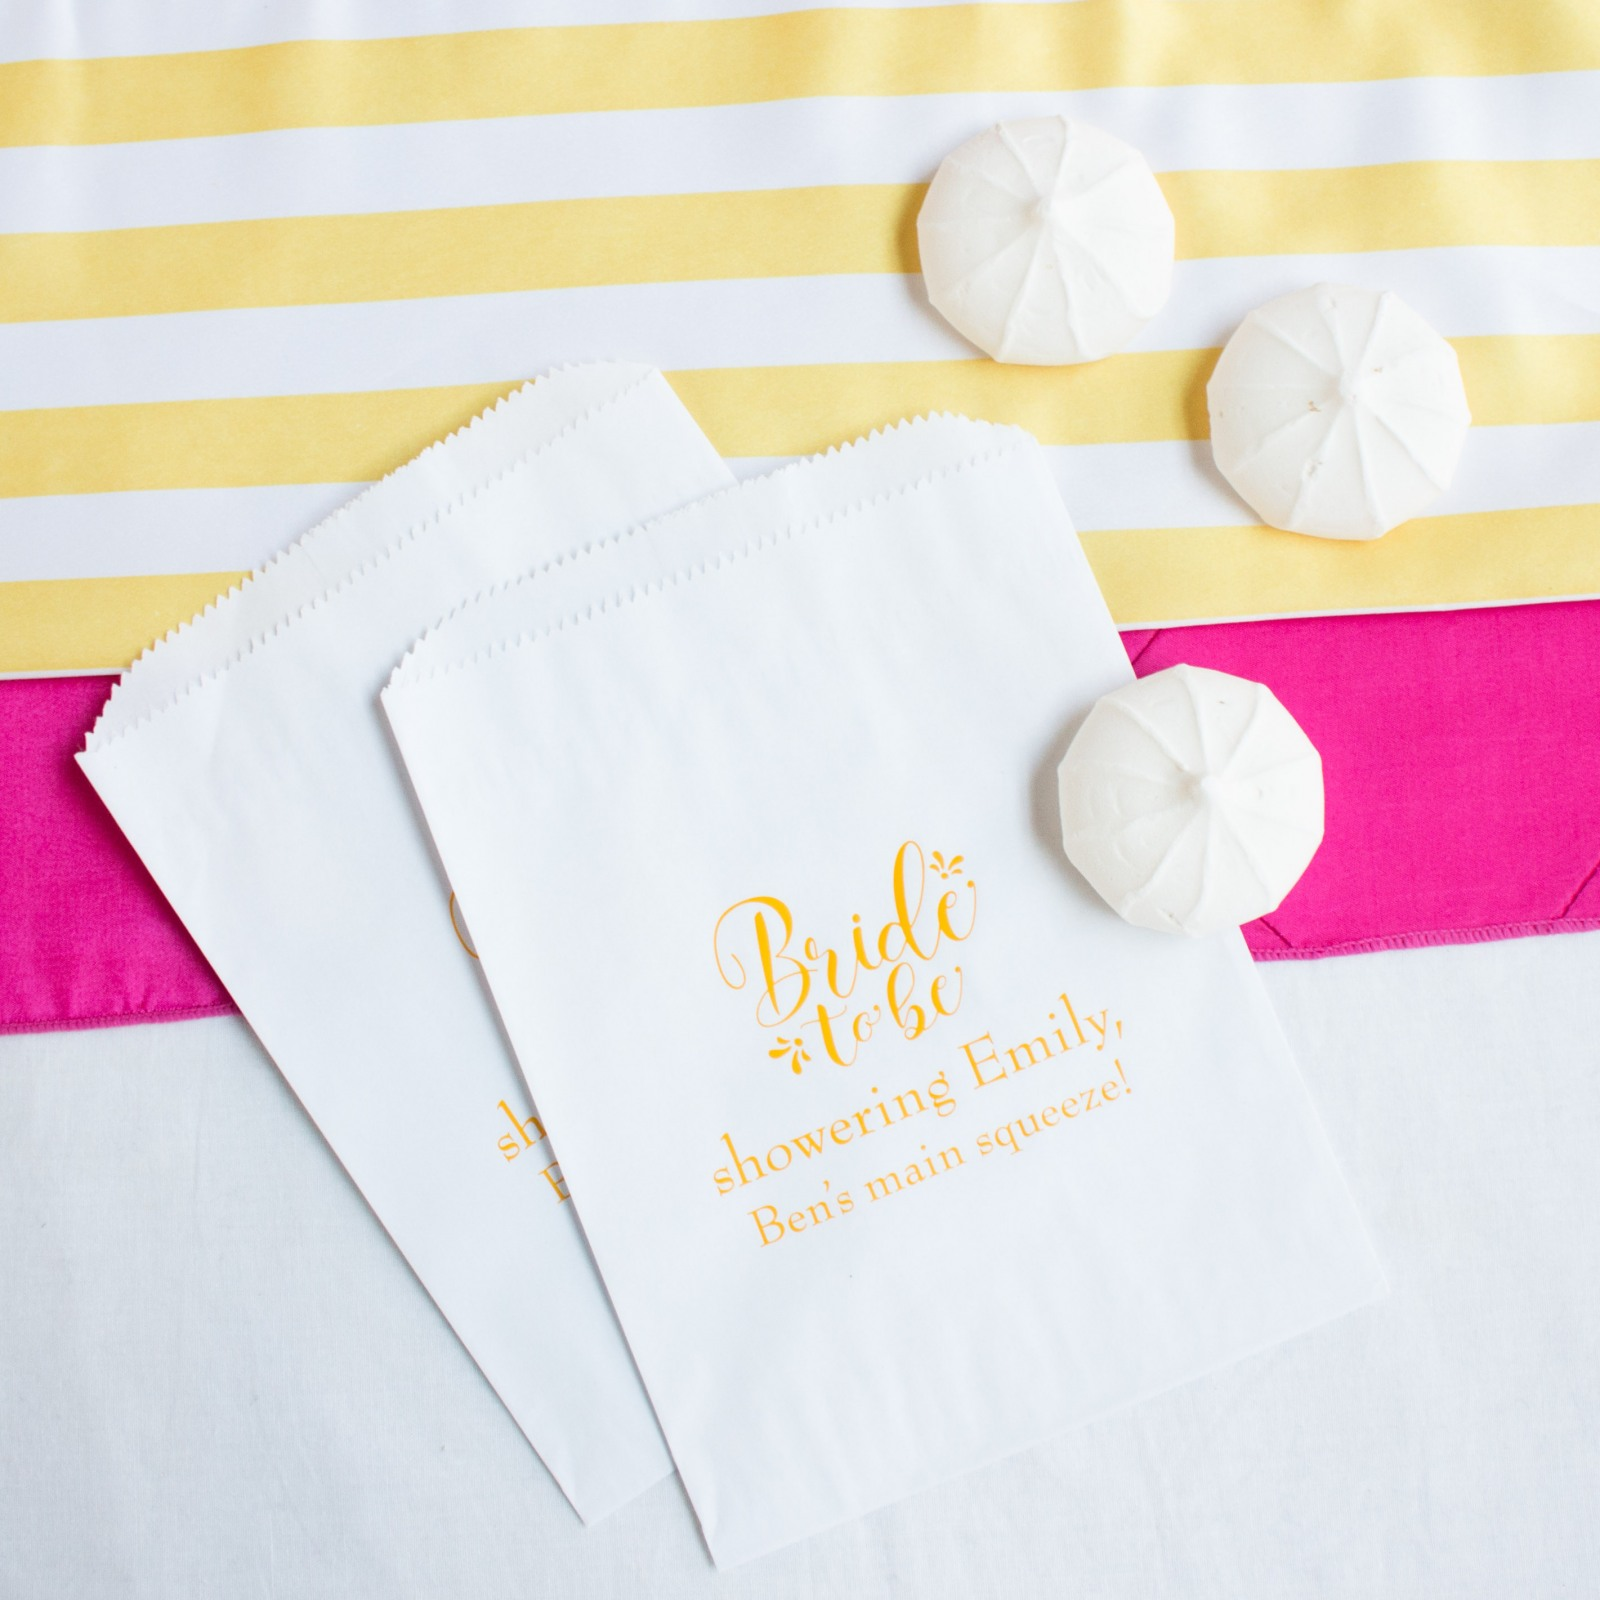 Personalized Bride to Be Sweets 'n Treats Bag